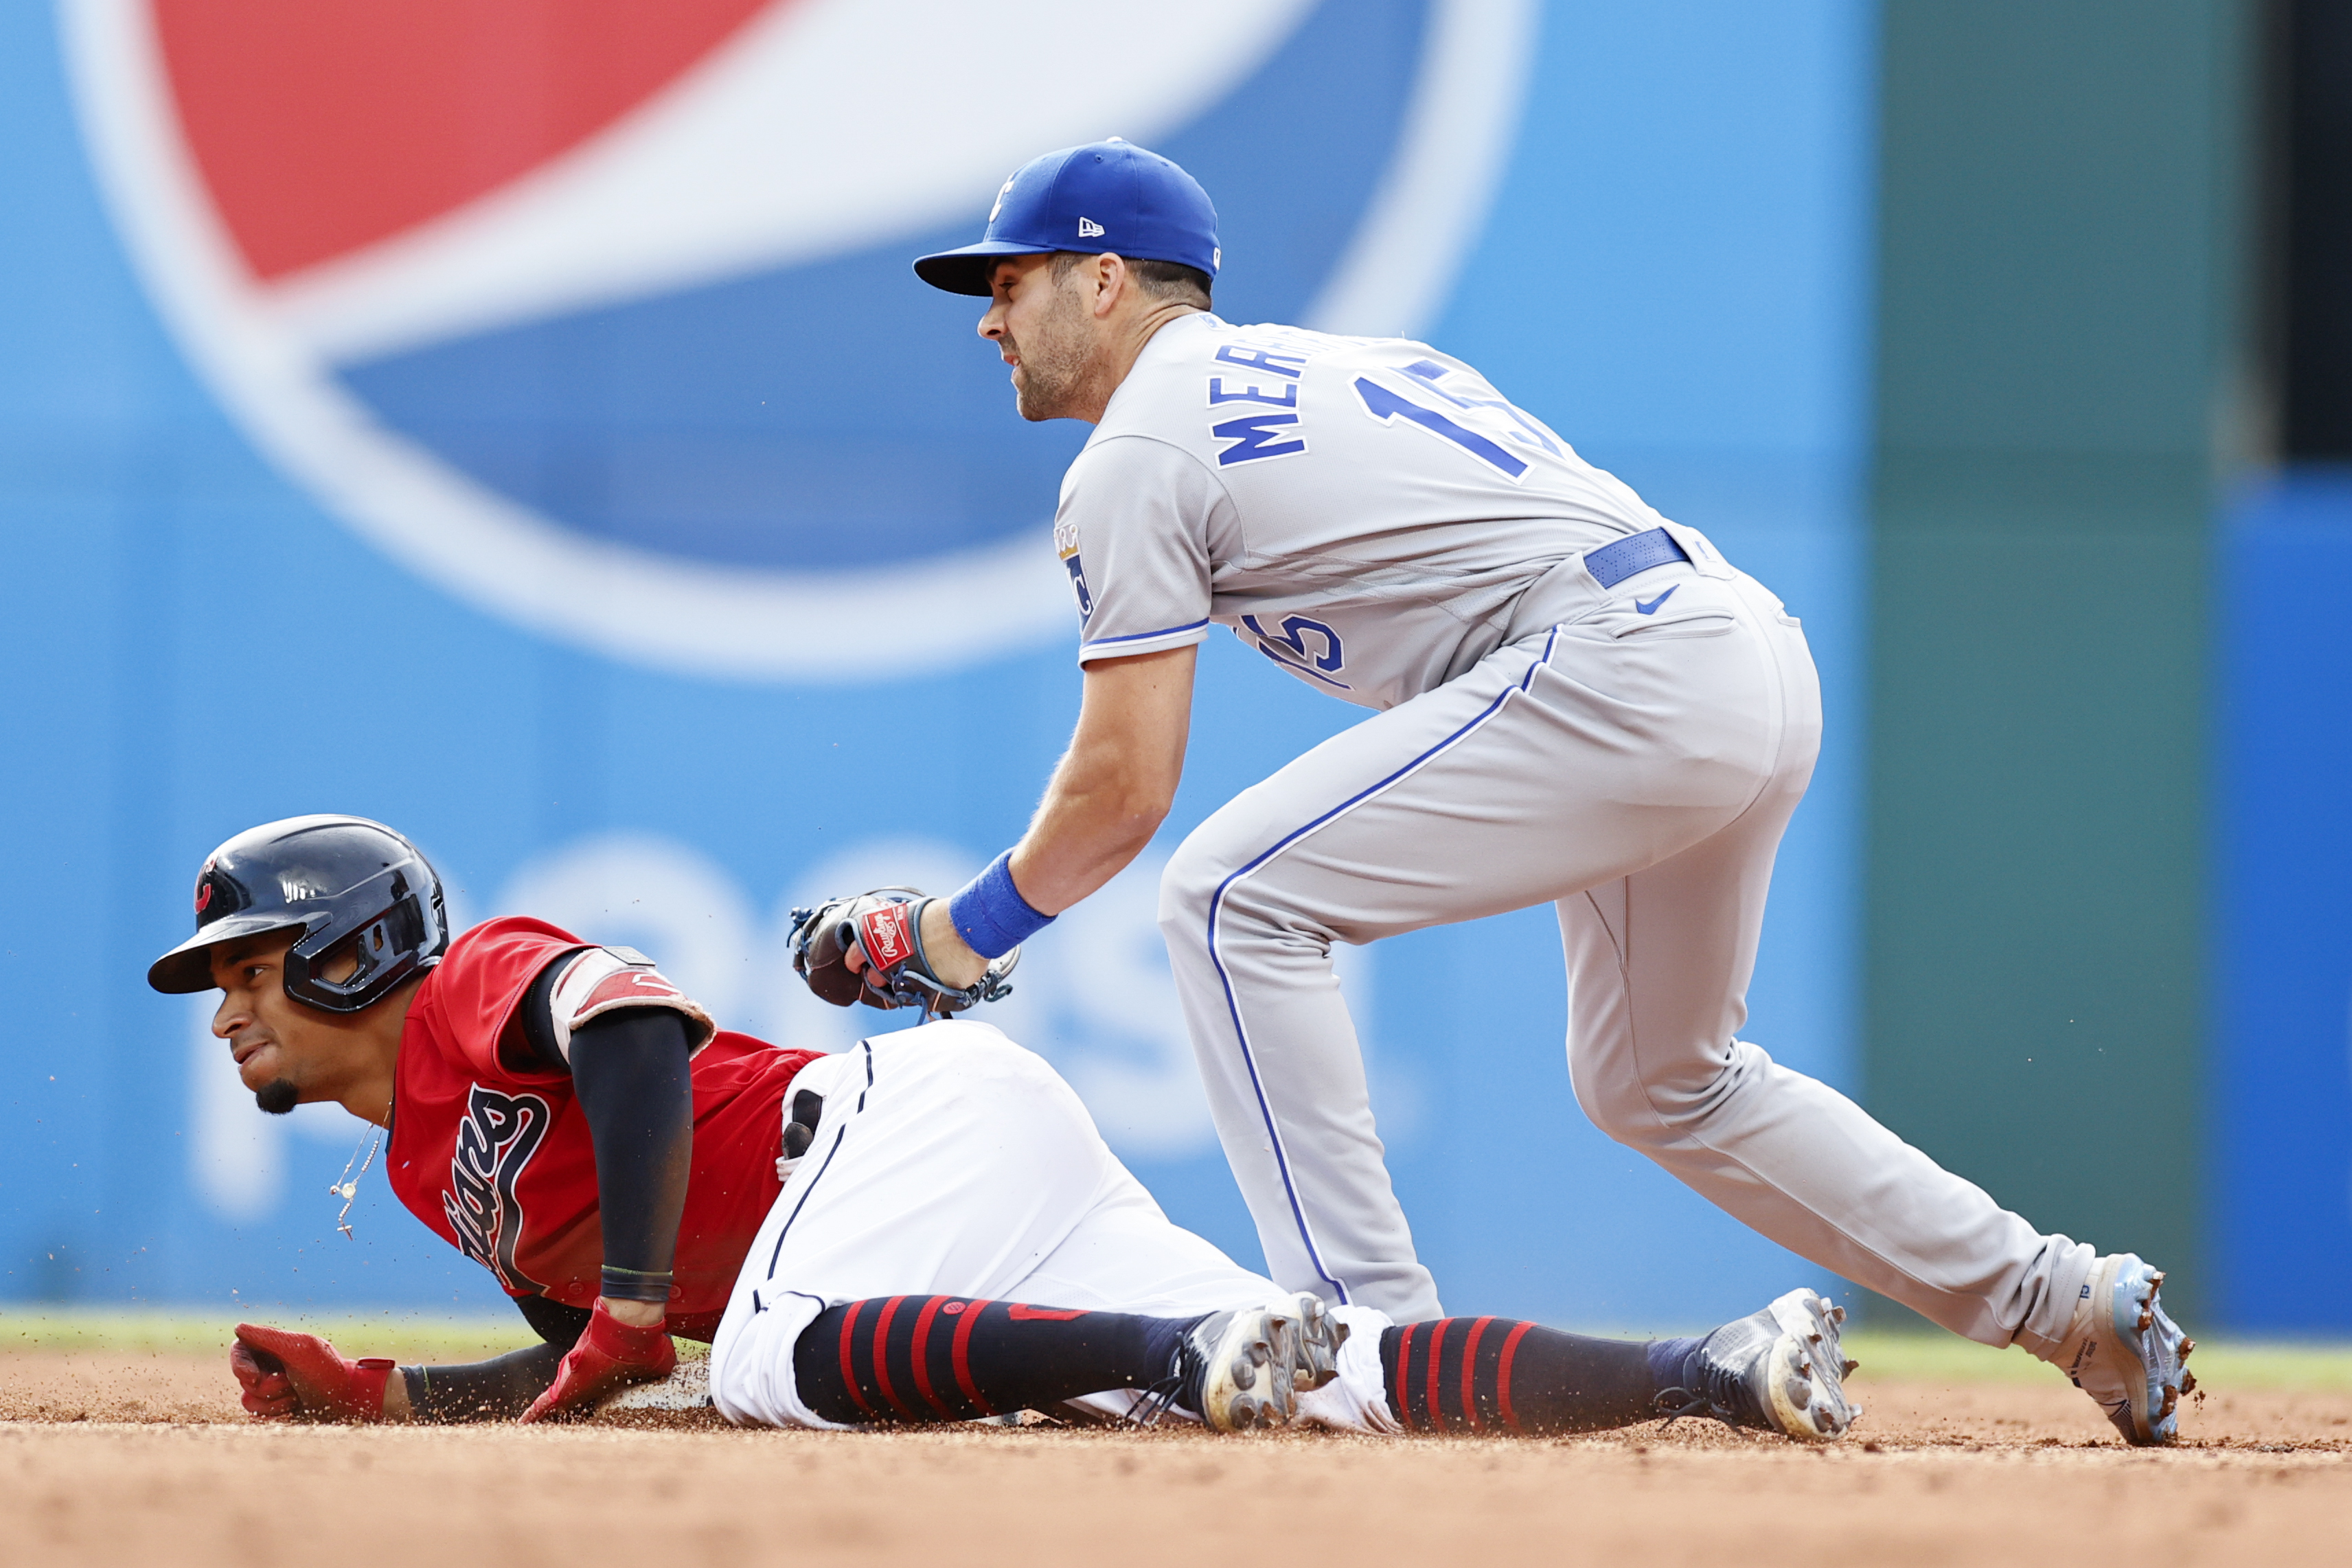 Oscar Mercado #35 of the Cleveland Indians is safe at second base after hitting an RBI single and advancing on an error as Whit Merrifield #15 of the Kansas City Royals covers during the fourth inning at Progressive Field on July 10, 2021 in Cleveland, Ohio.